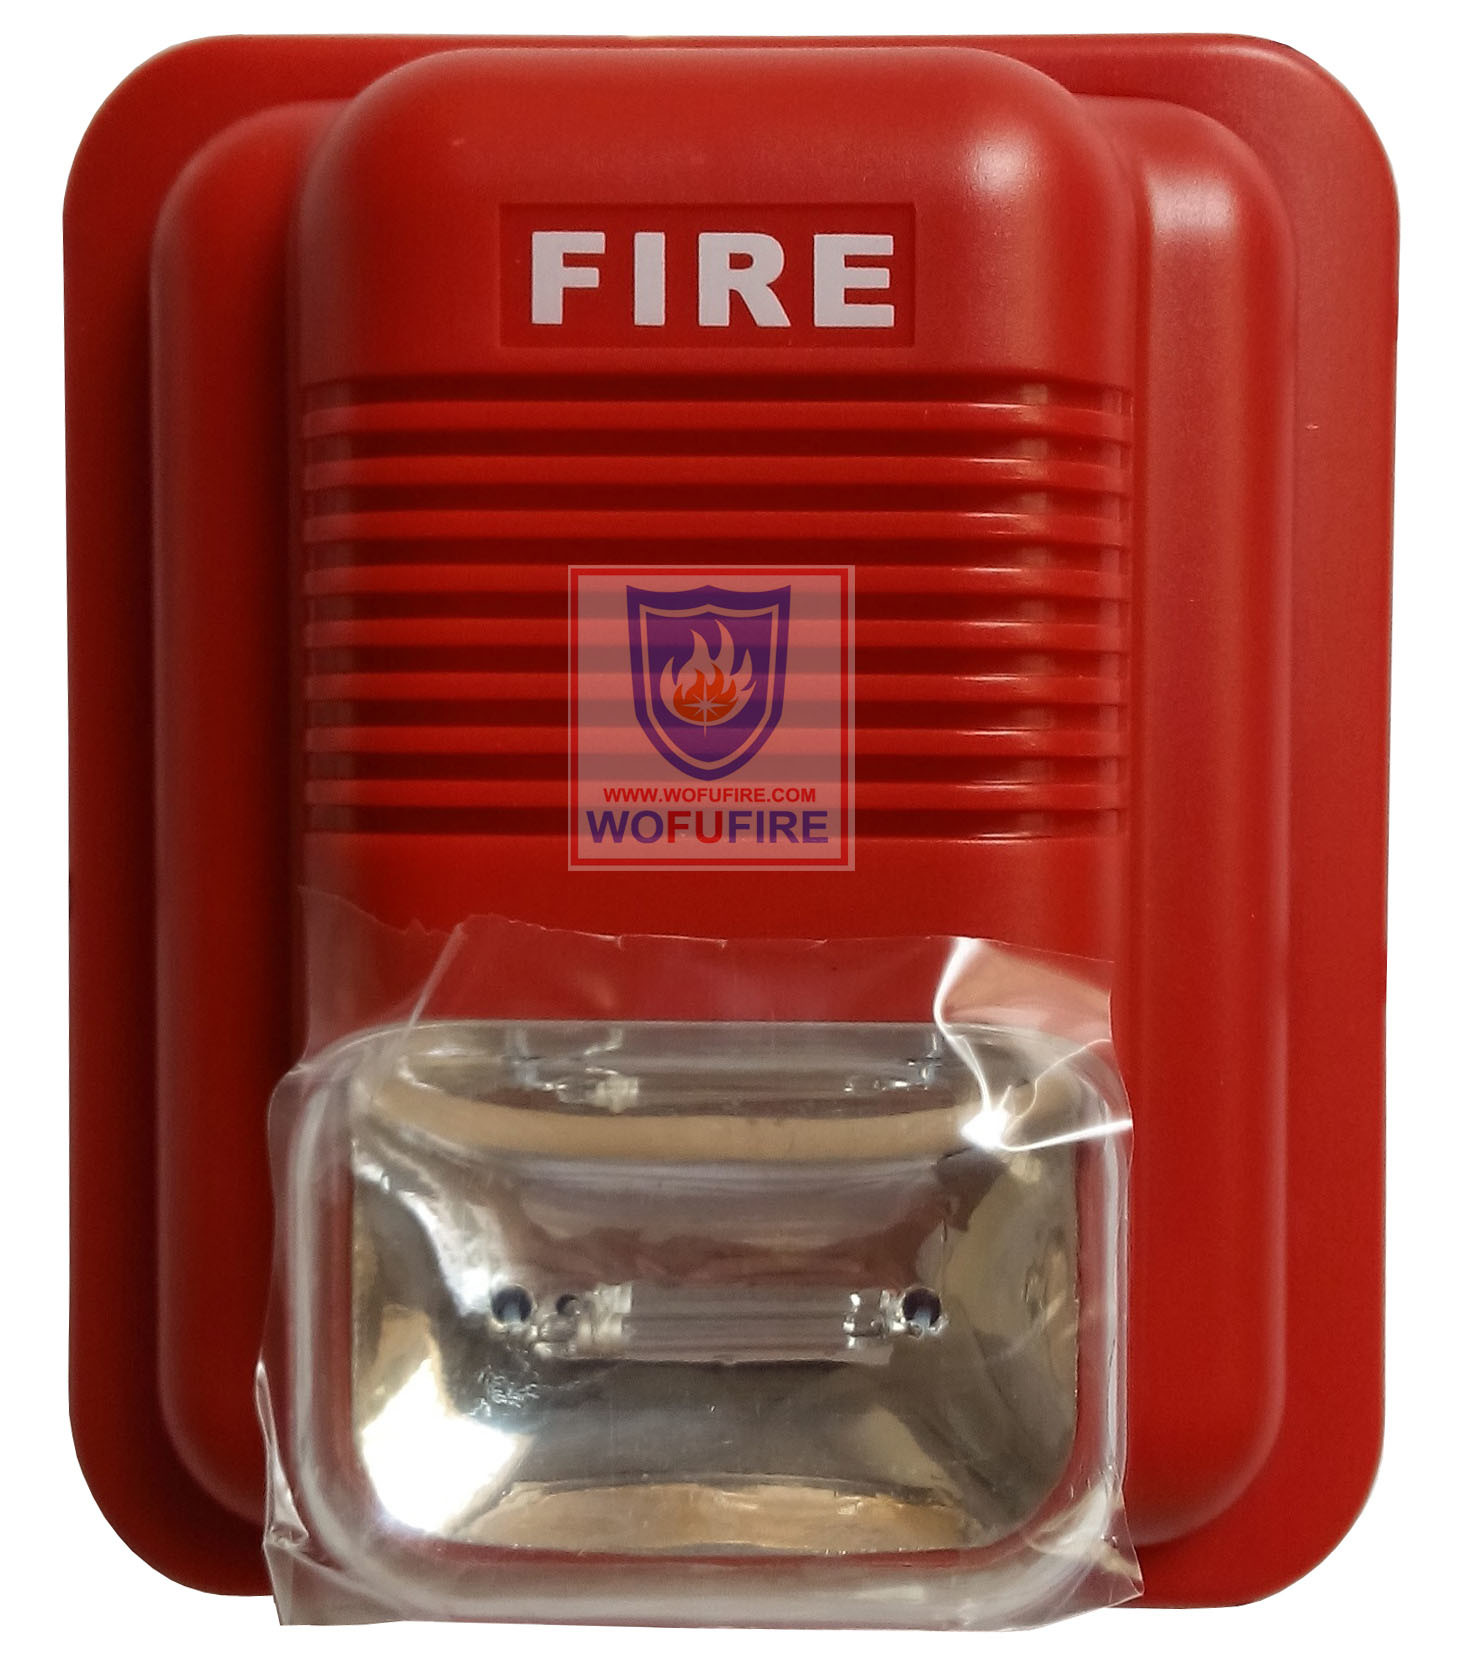 Sound and Light Fire Alarm